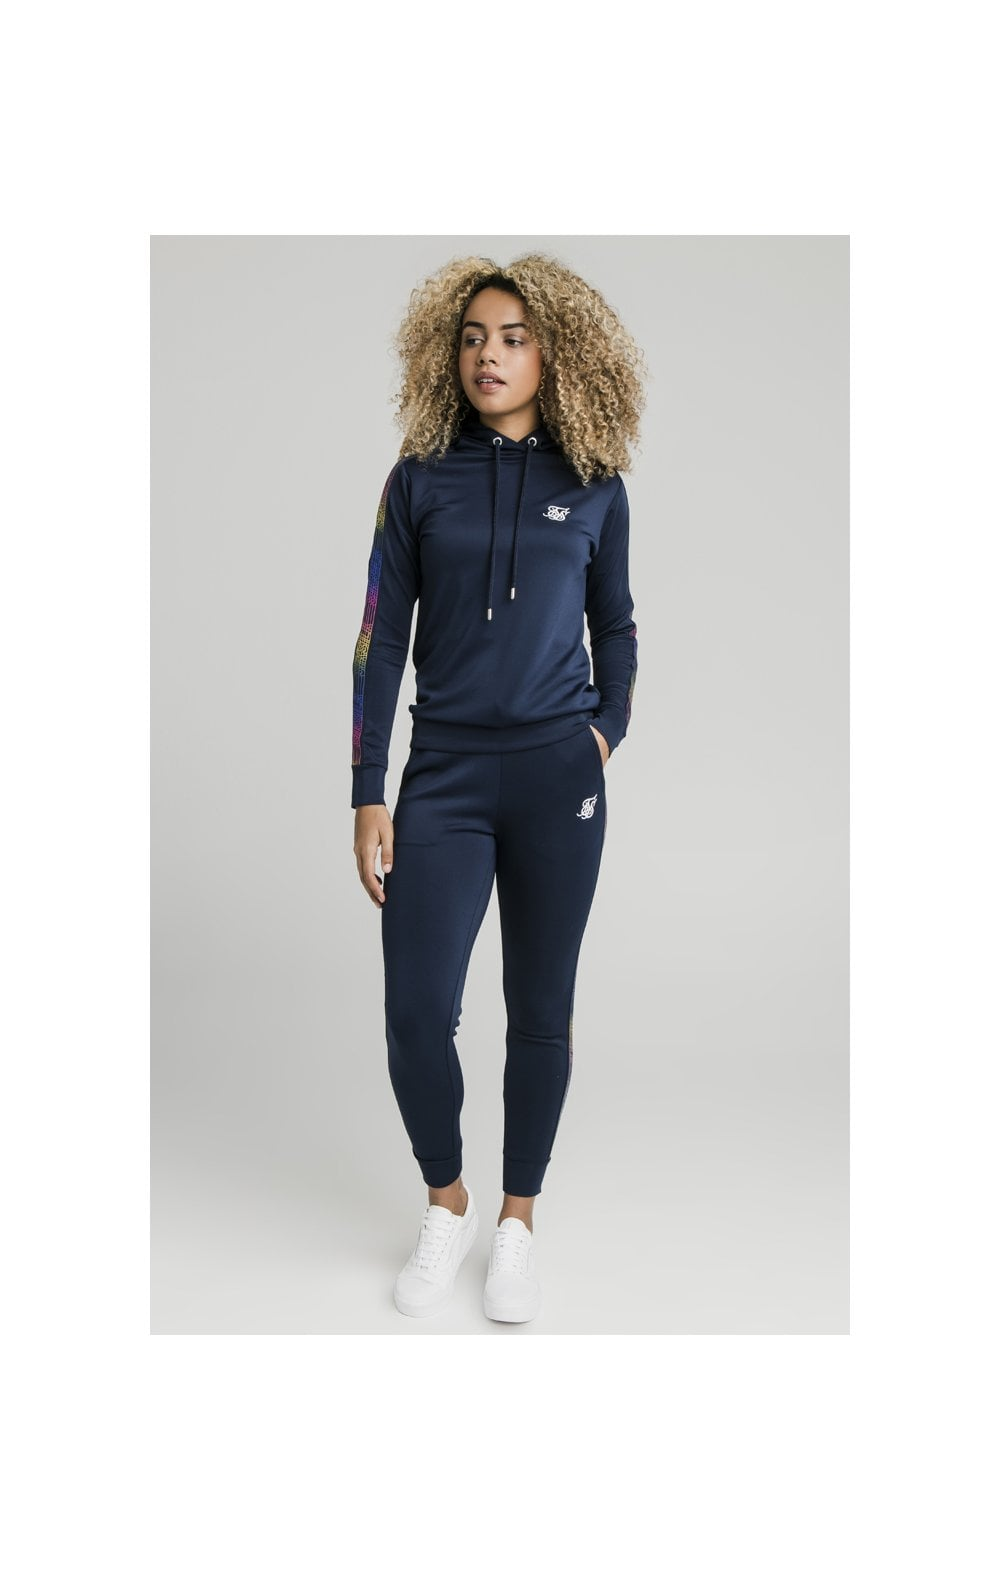 Load image into Gallery viewer, SikSilk Rainbow Runner Track Top - Navy (5)